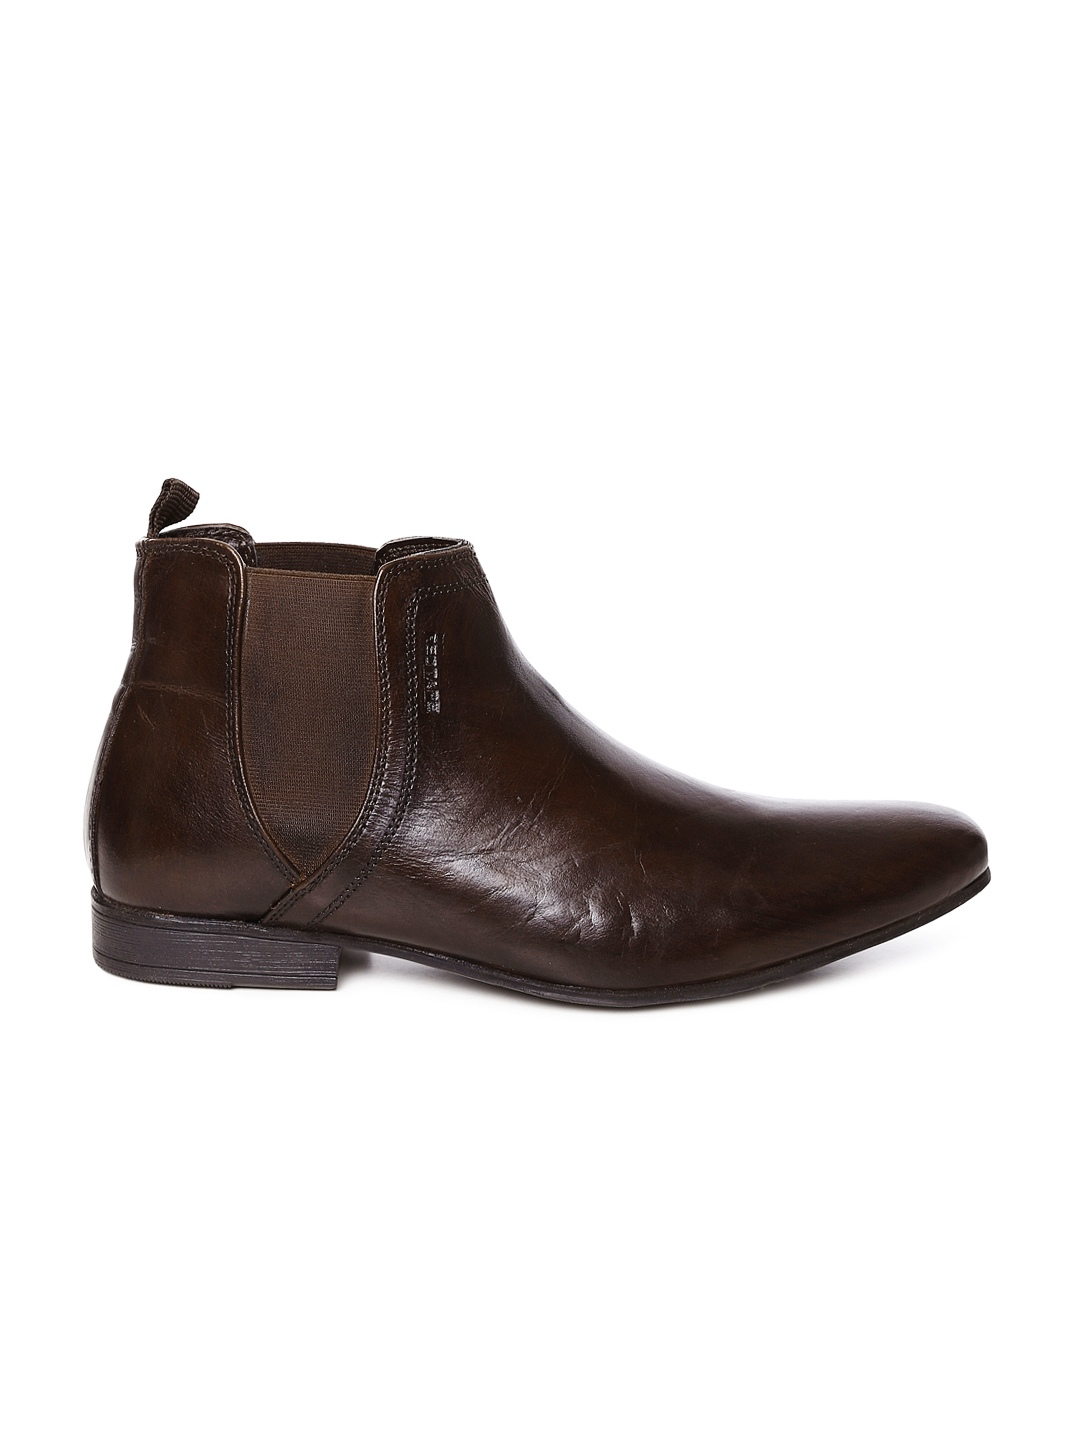 myntra red tape men brown leather boots 701036 buy